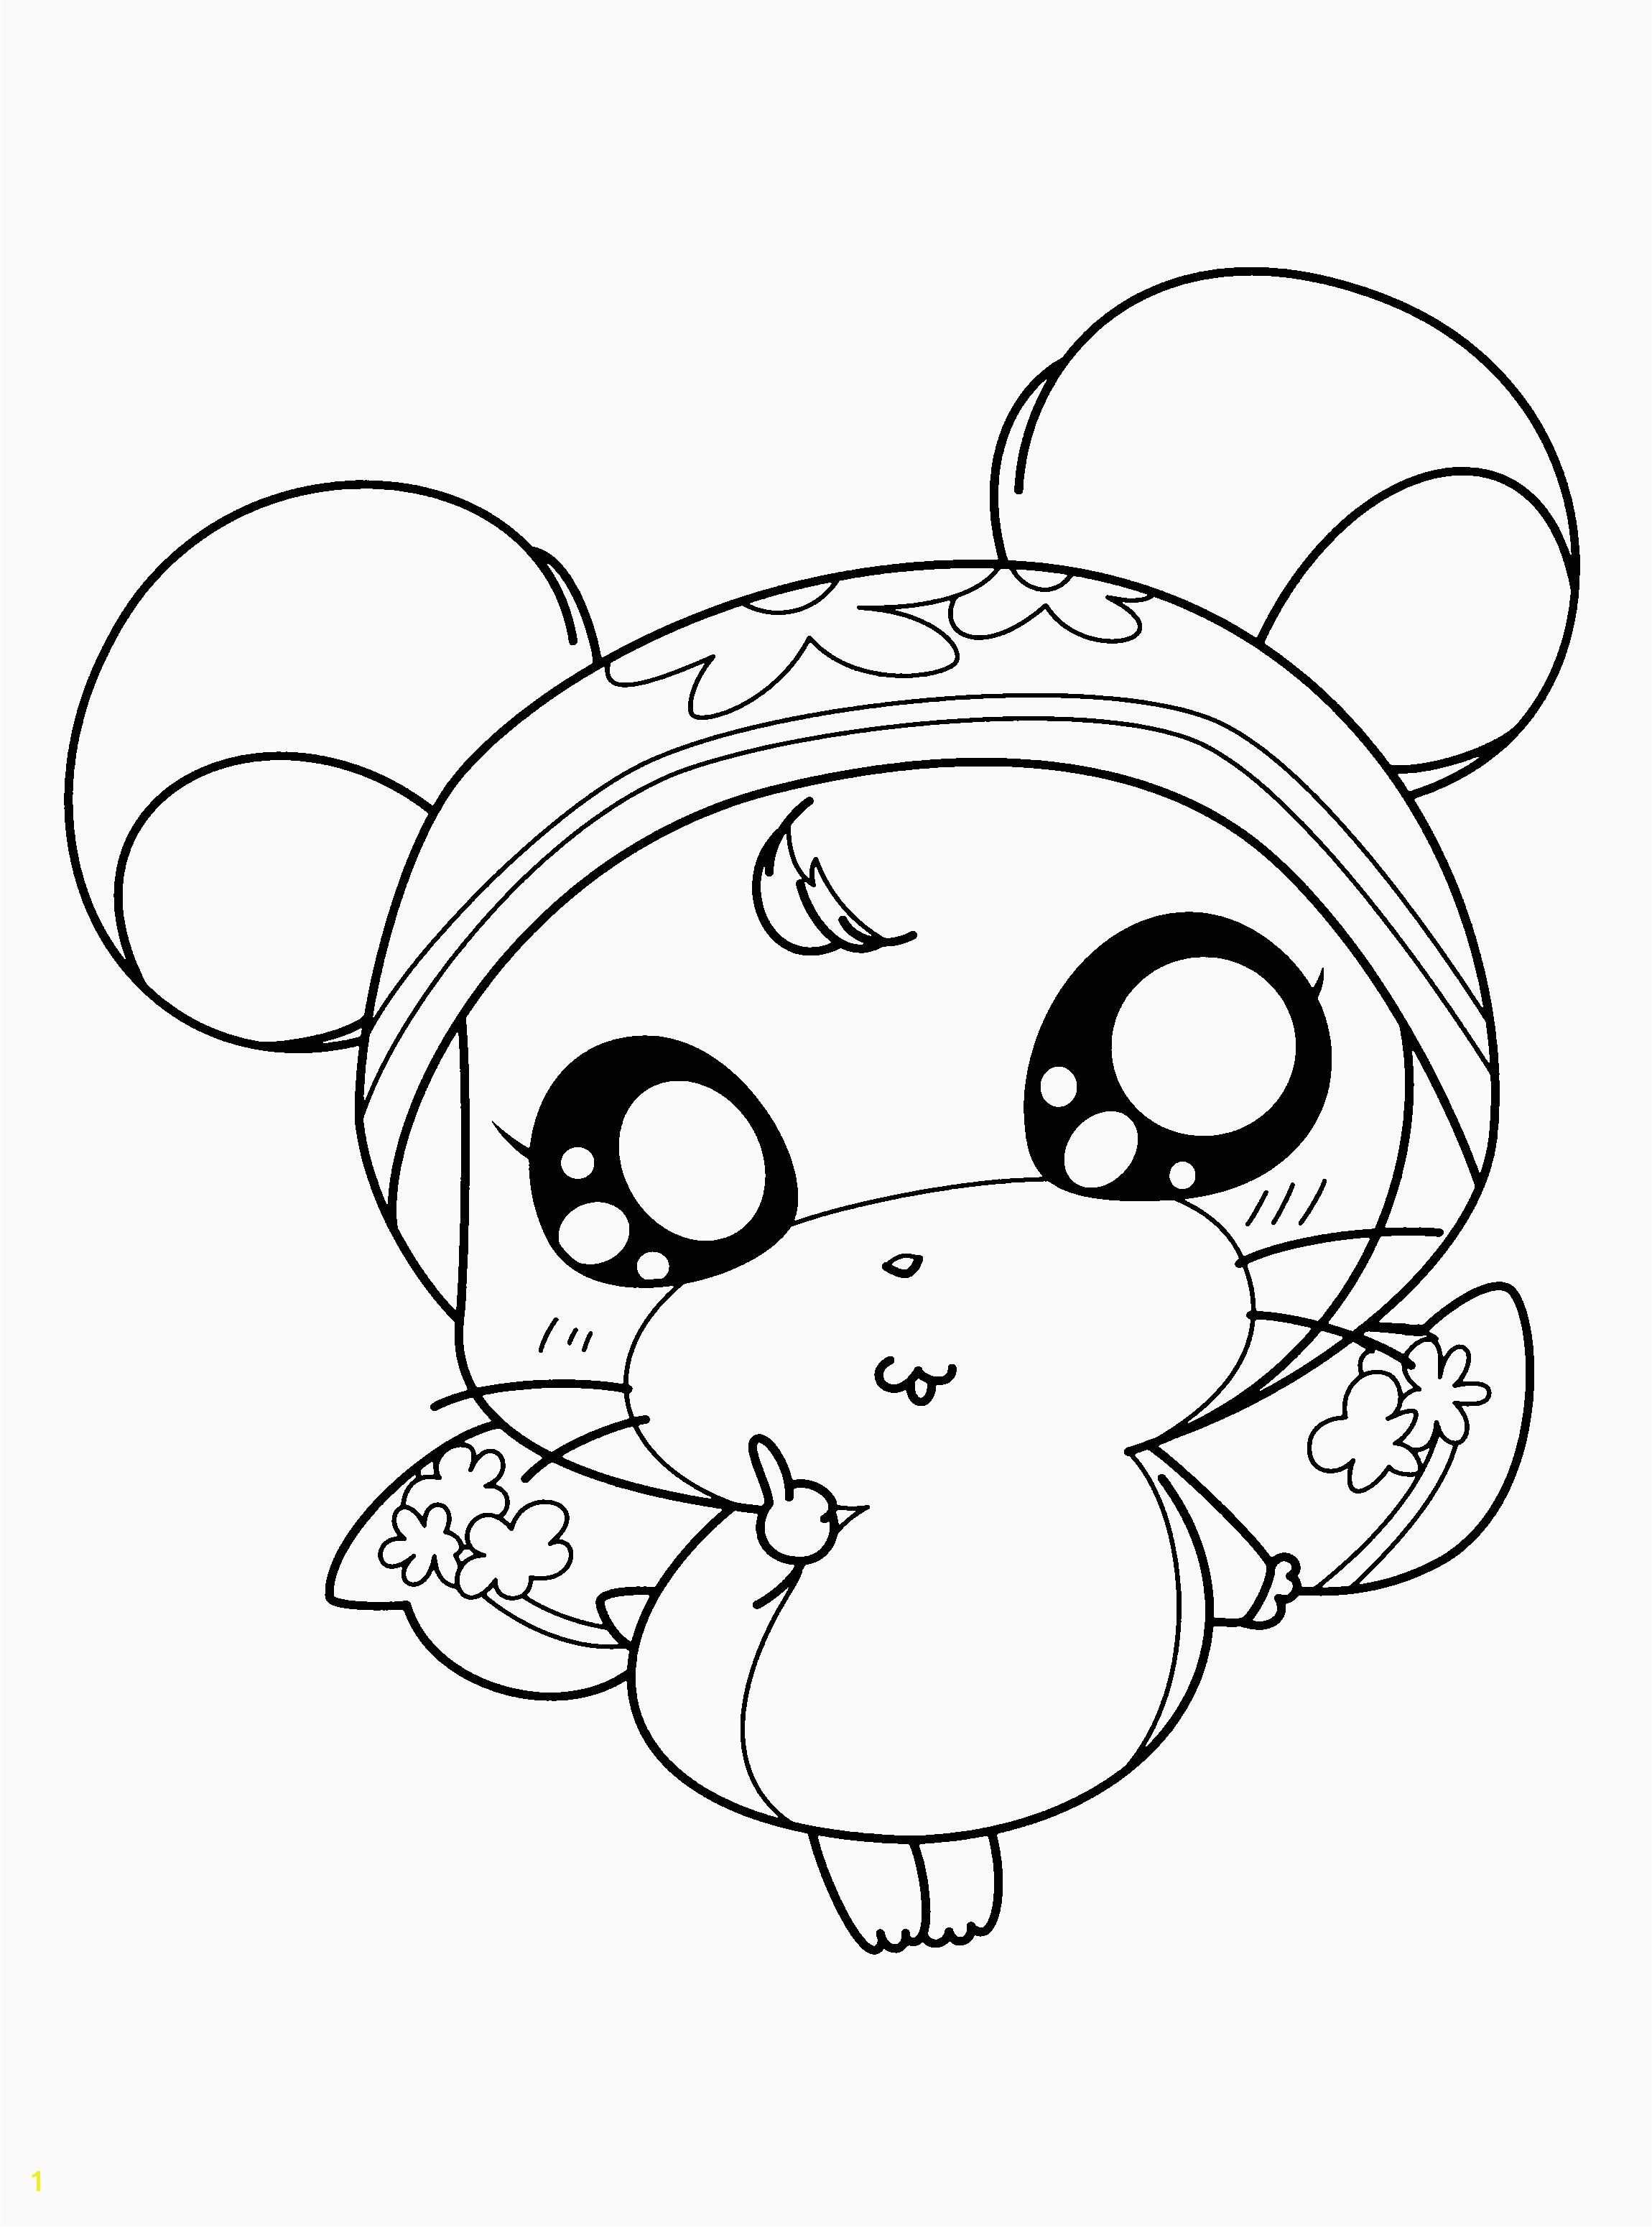 Pokemon Coloring Pages For Kids Pokemon Coloring Pages Printable Fresh Coloring Printables 0d – Fun